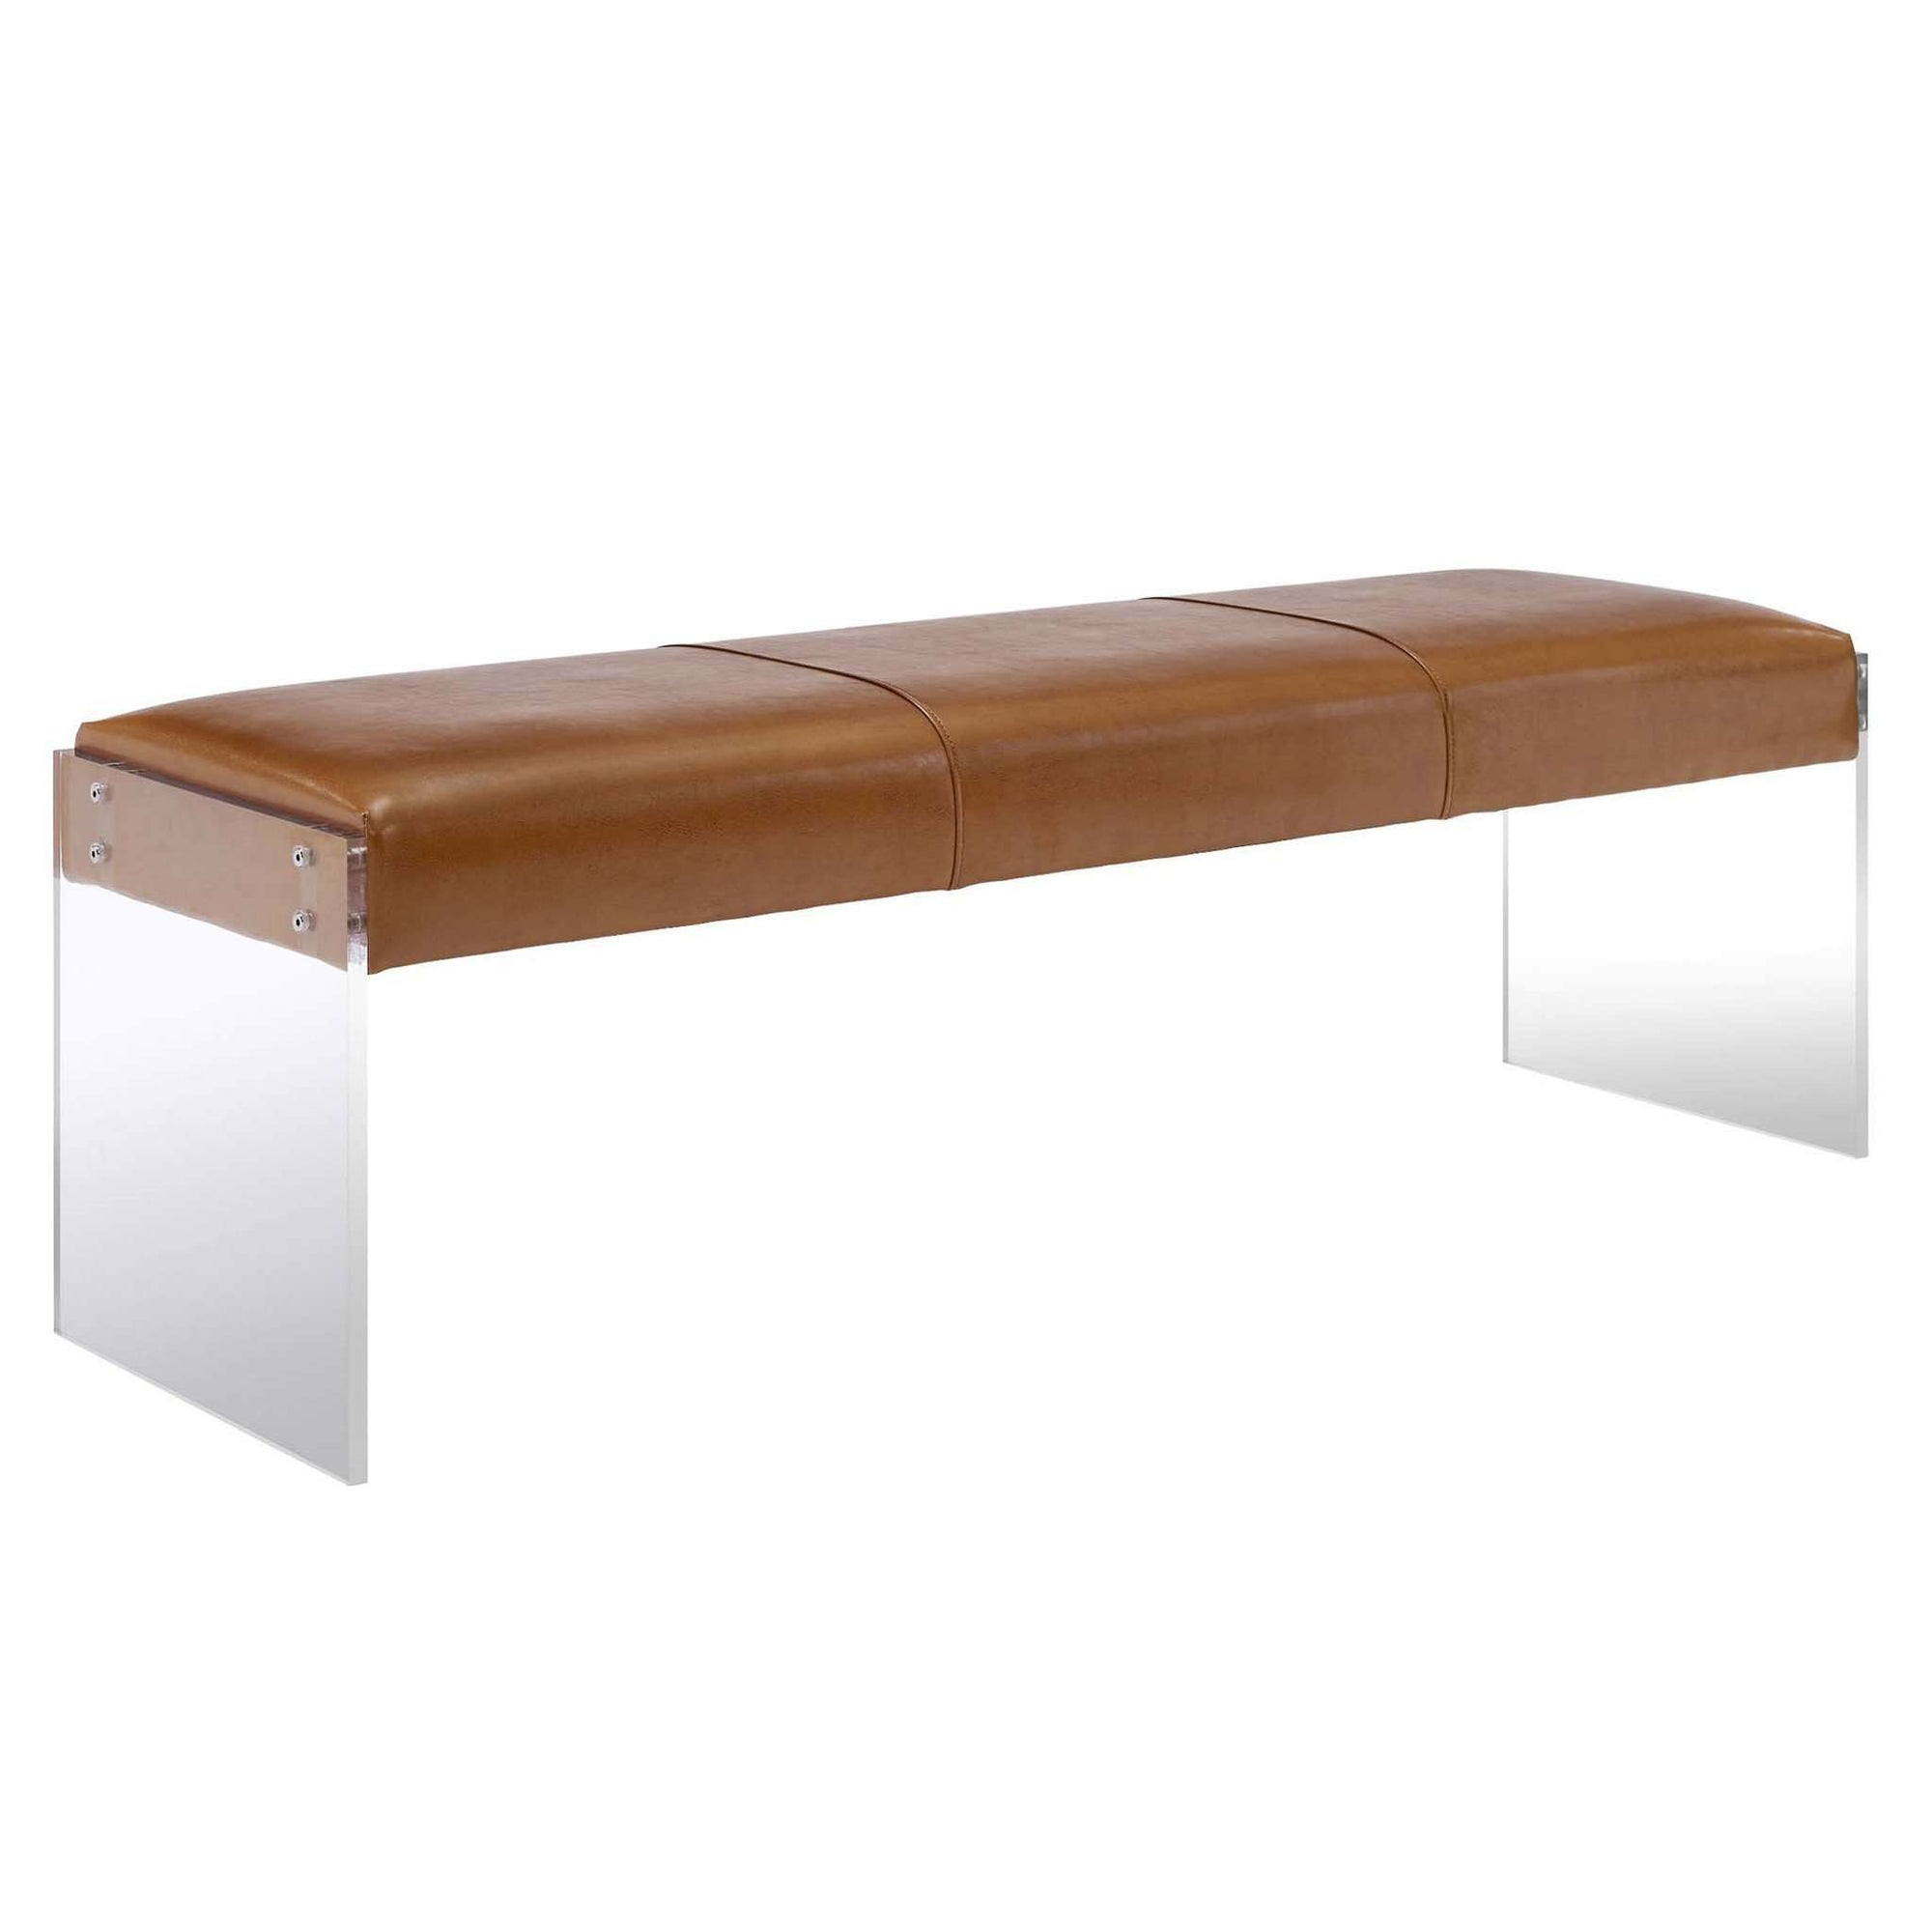 Tov-Envy Leather/Acrylic Bench-Bench-MODTEMPO